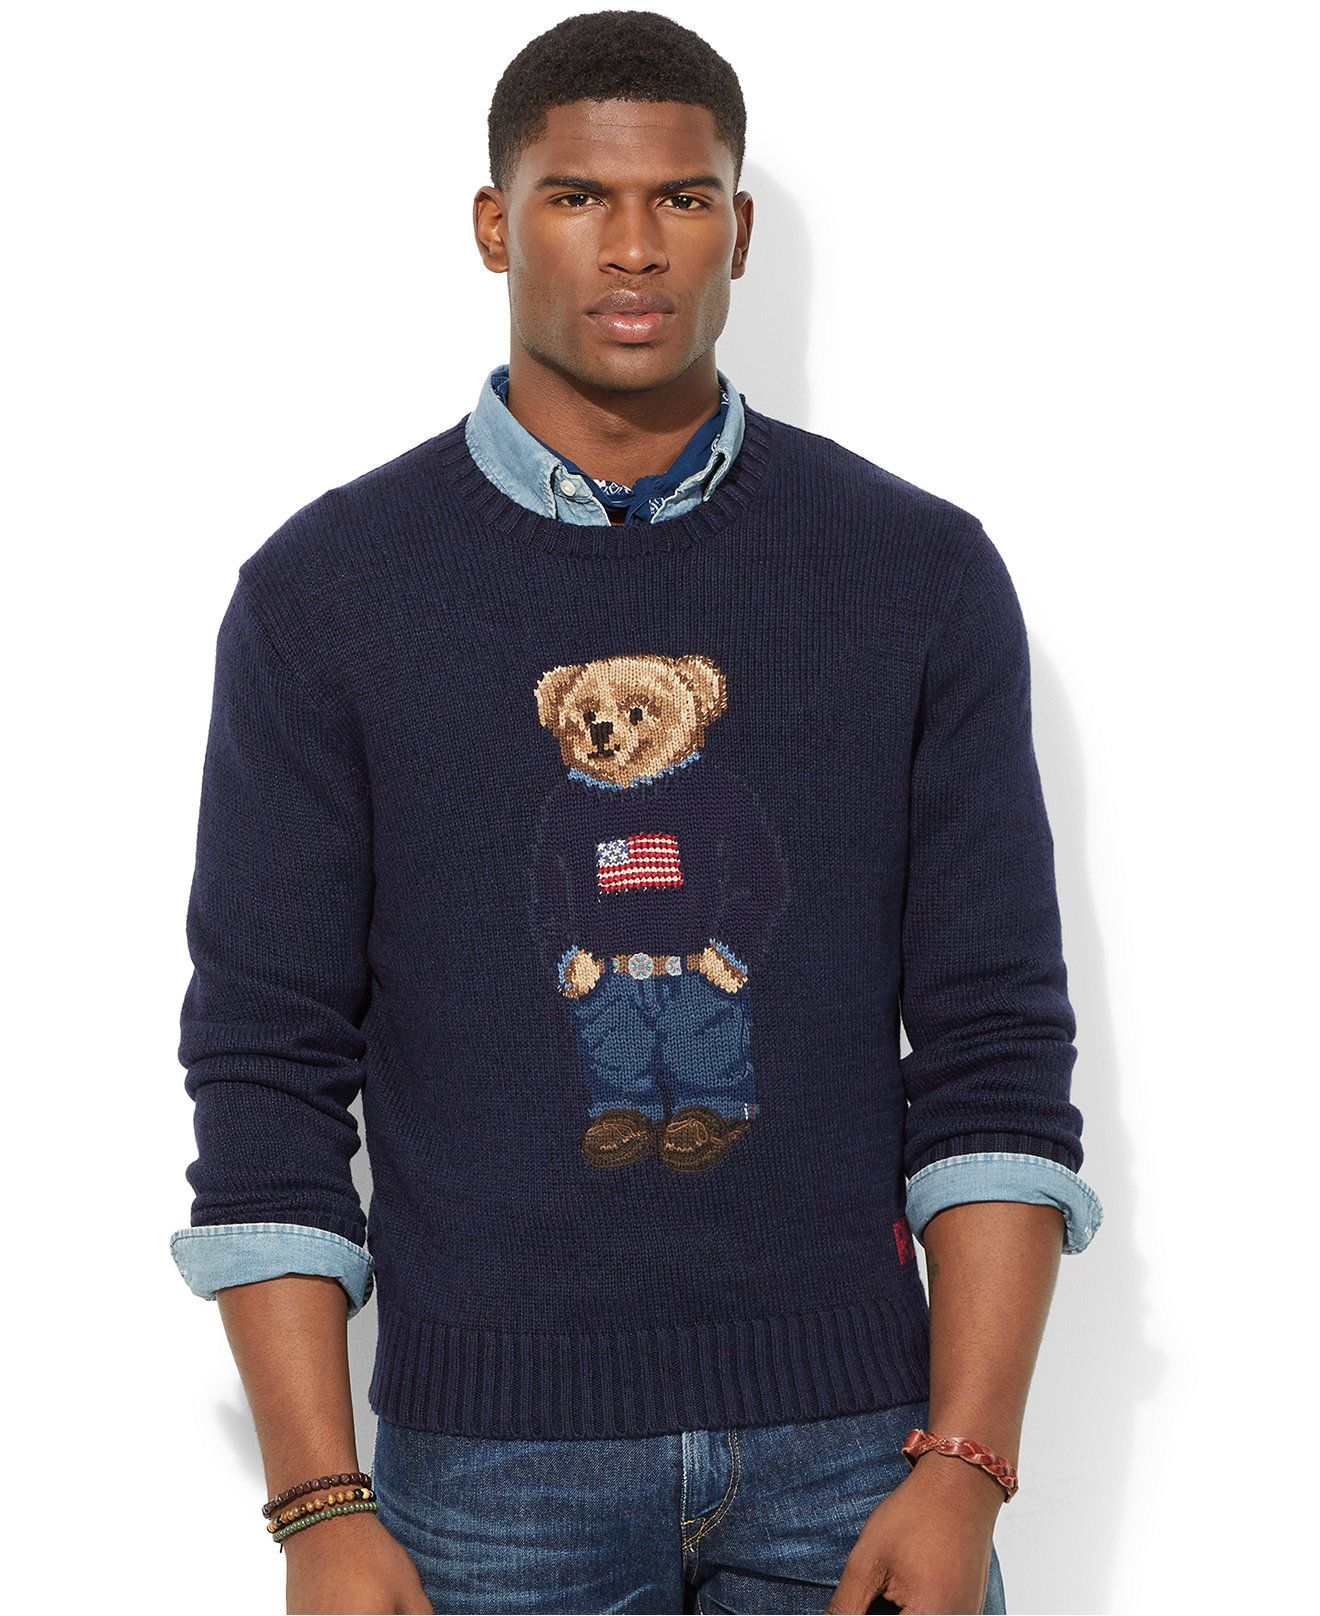 ded710a95 Polo Ralph Lauren Polo Bear Pima Sweater - Sweaters - Men - Macy s ...